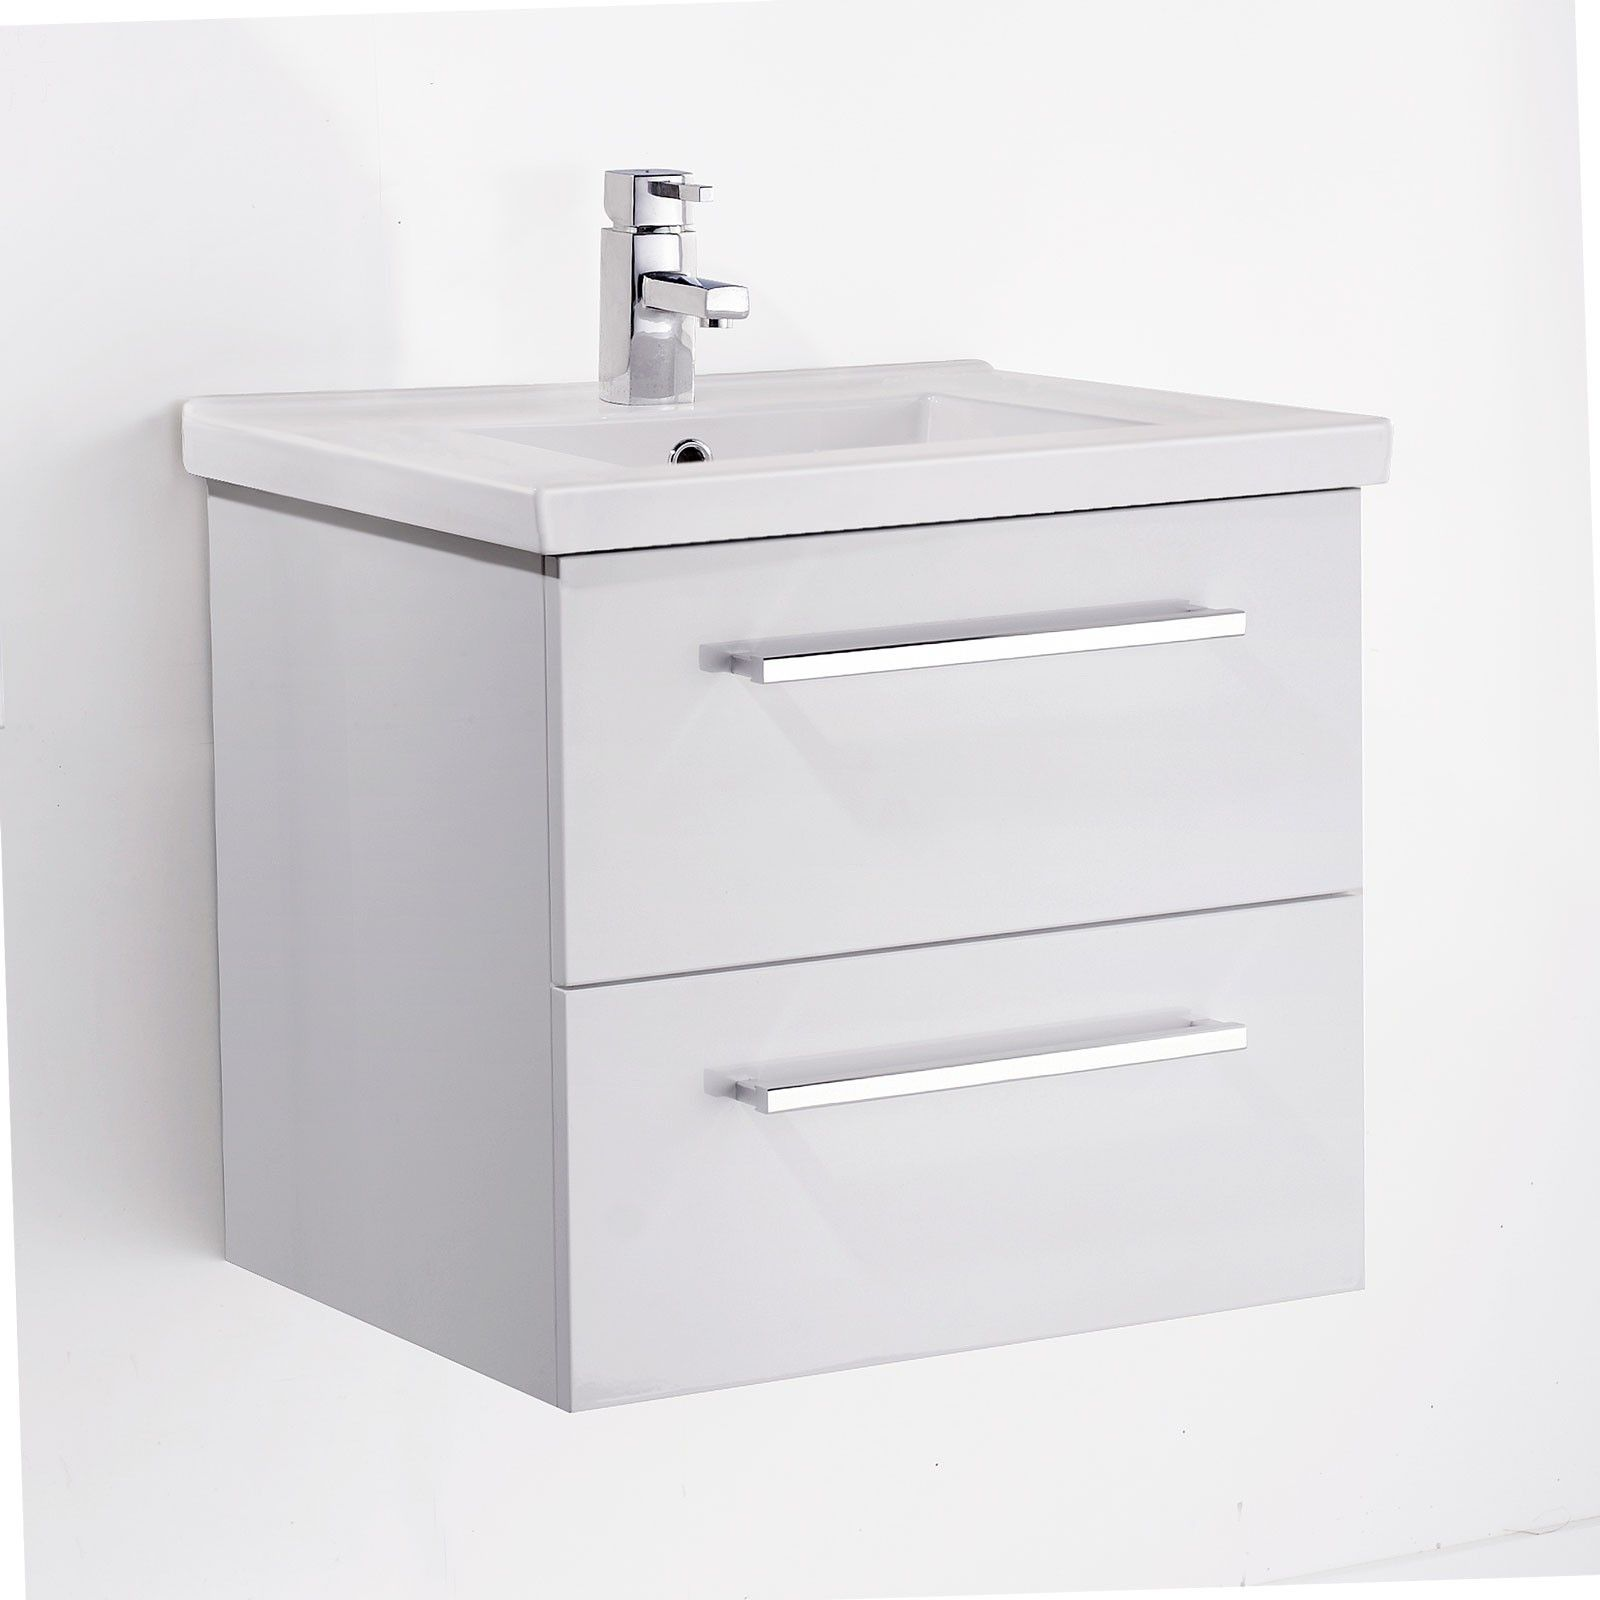 Napoleon Wall Hung White Gloss Basin Vanity Unit 600mm With Images Basin Vanity Unit Bathroom Wall Hanging Vanity Units